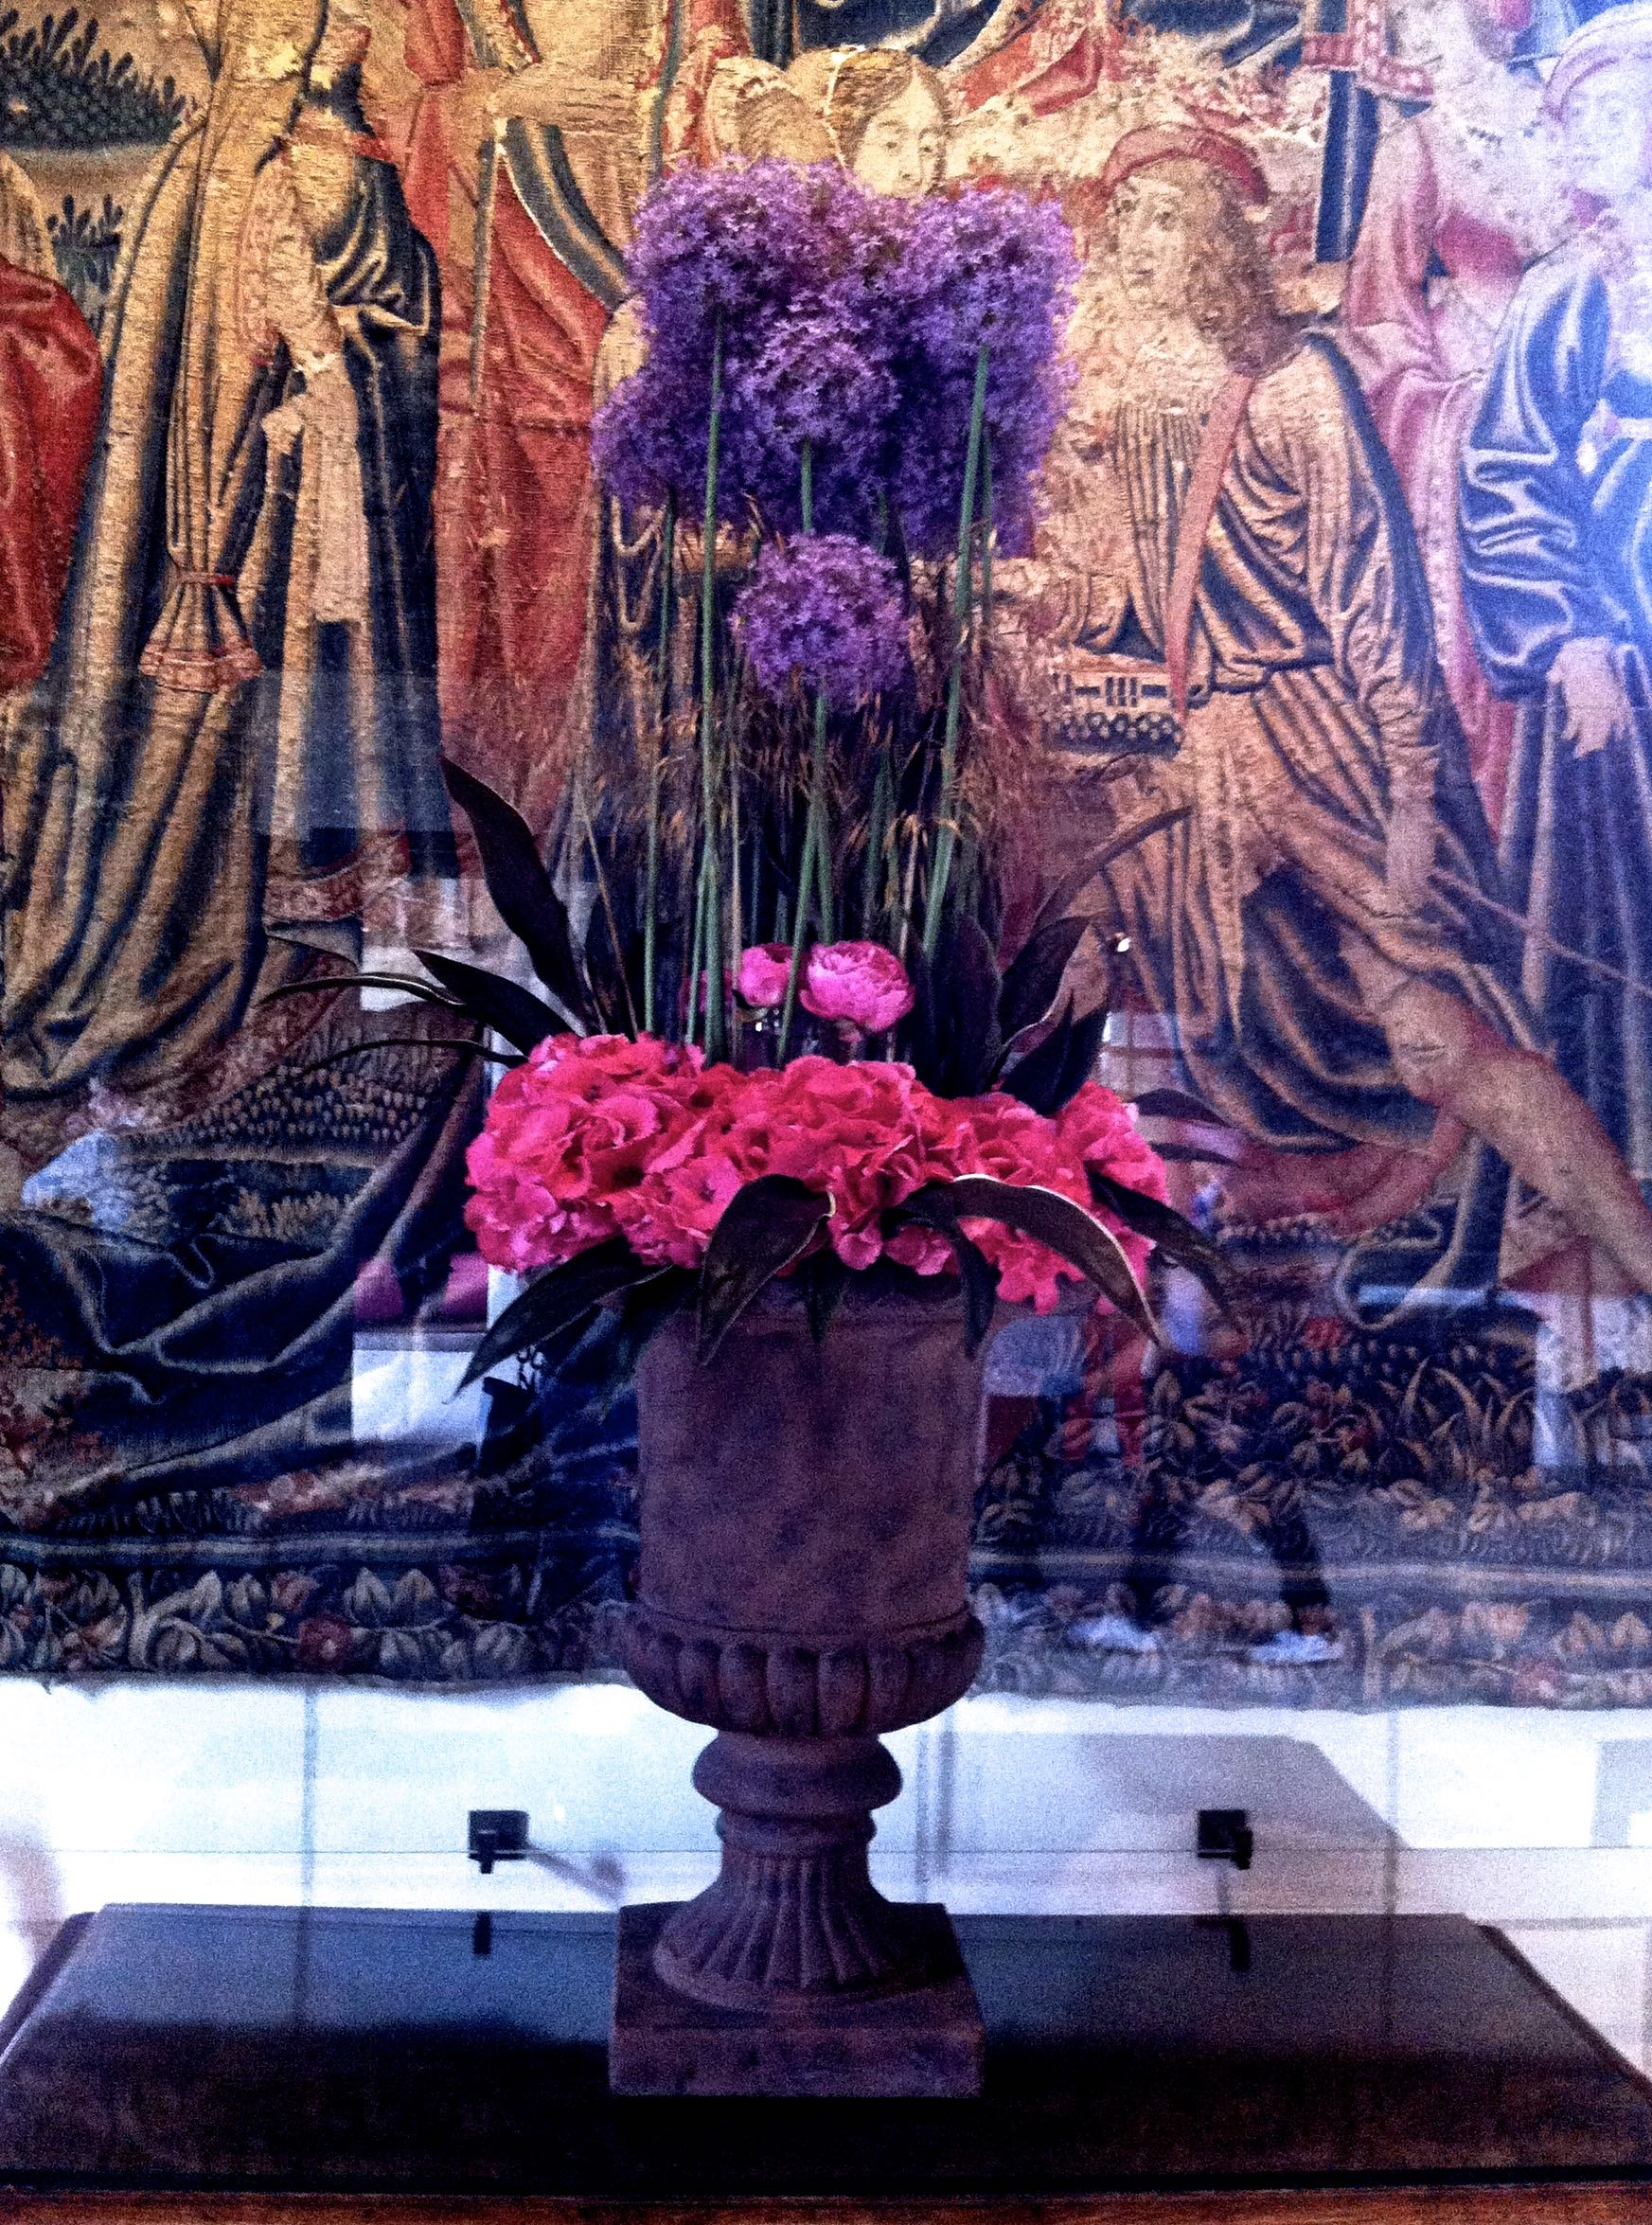 Flowers in front of the tapestry